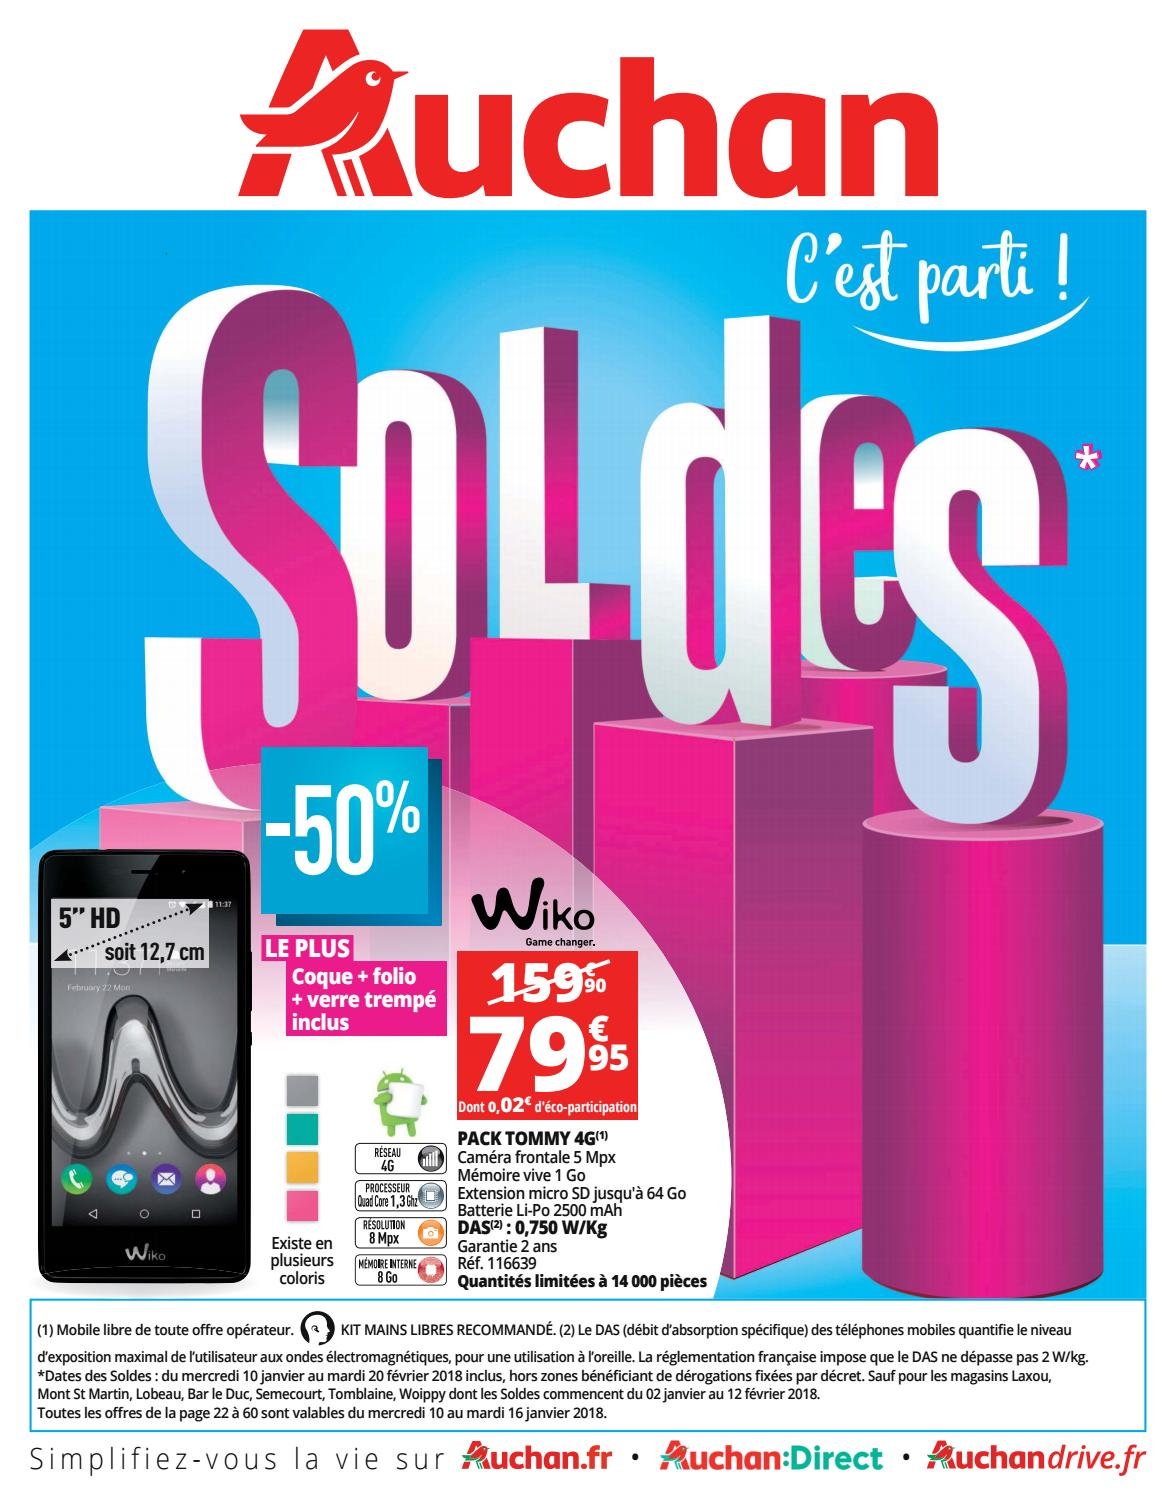 Meuble Auchan Sarcelles Catalogue Soldes 2018 Auchan By Bonsplans Issuu